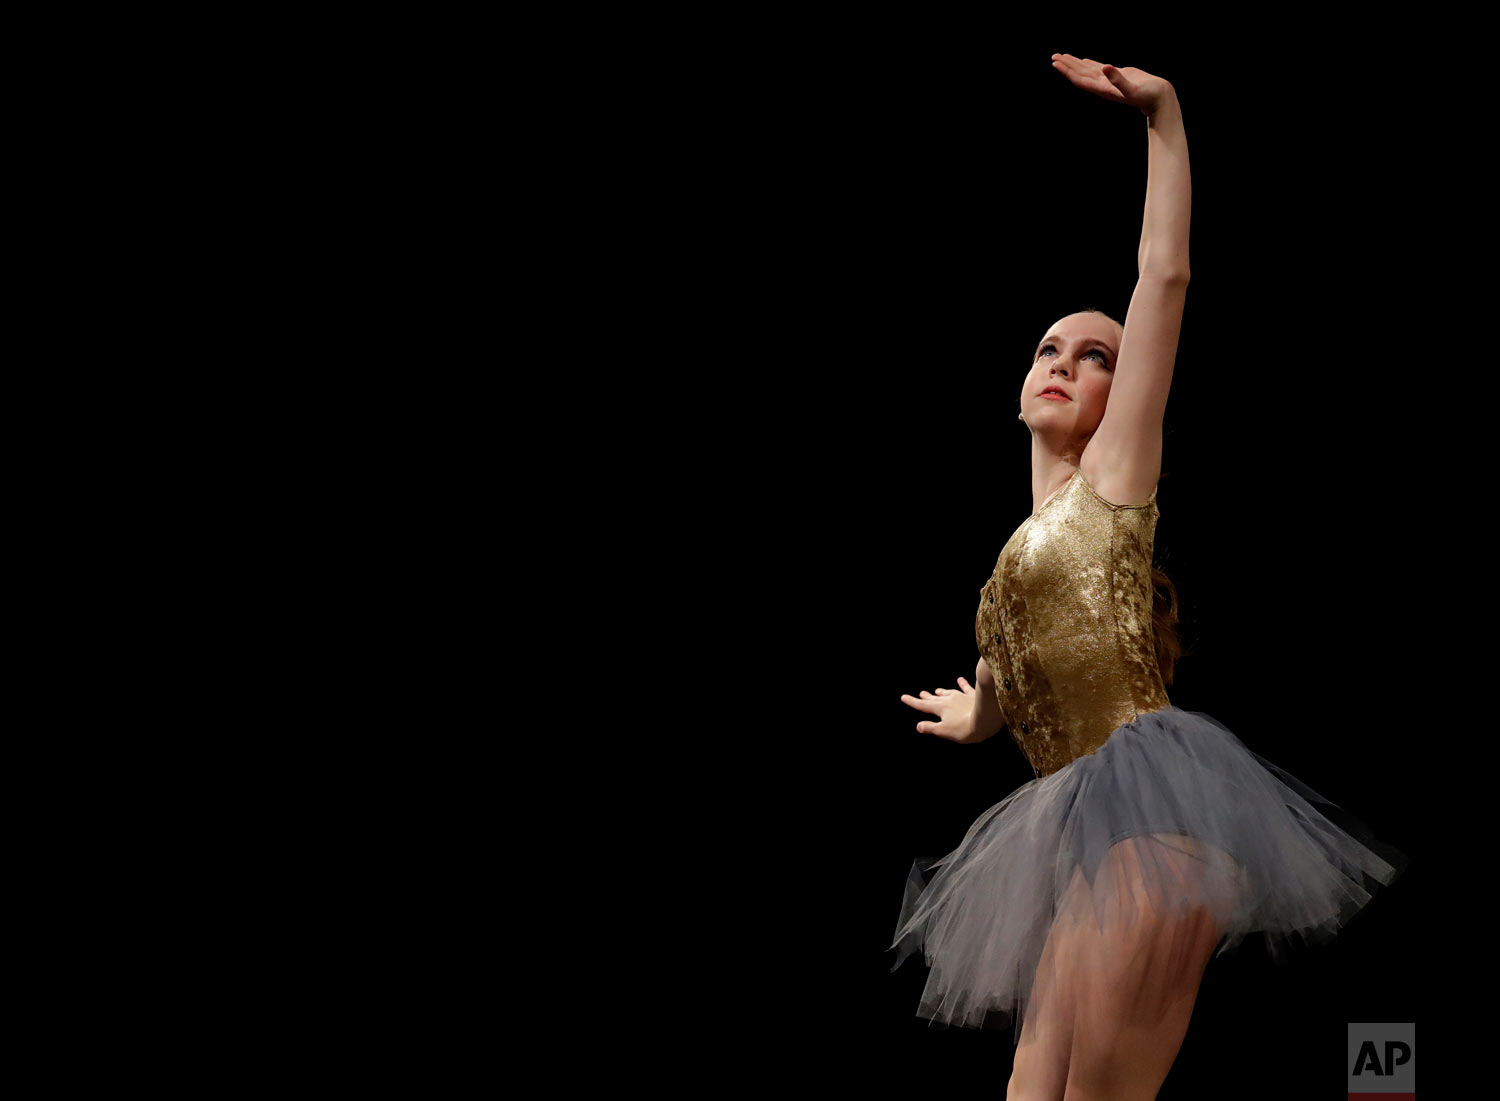 Tess Meulbroek performs in the Youth America Grand Prix North America regional semi-finals in River Forest, Ill. (AP Photo/Nam Y. Huh)